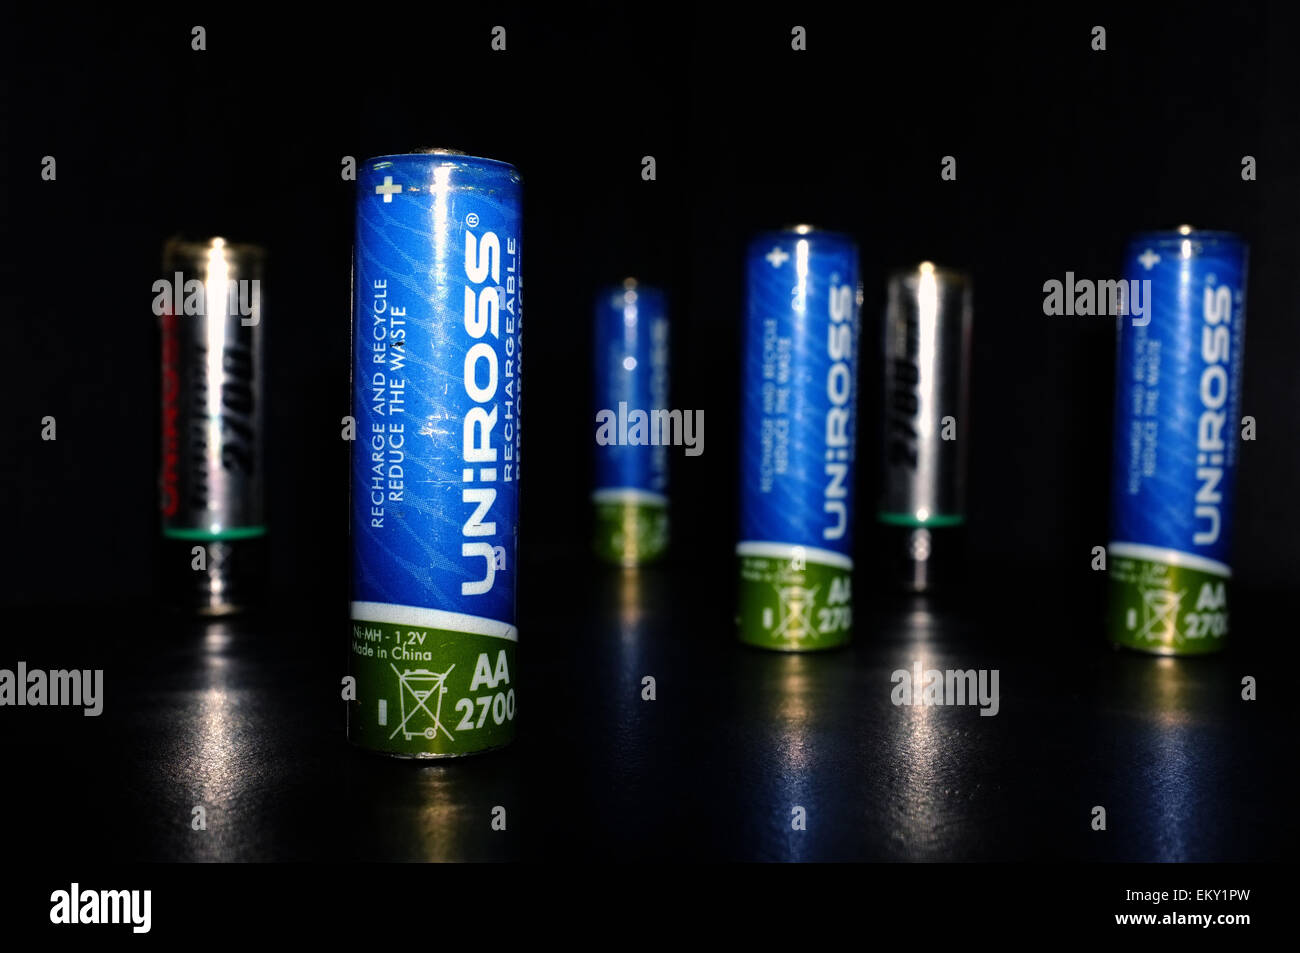 A selection of rechargeable AA batteries photographed against a black background. - Stock Image